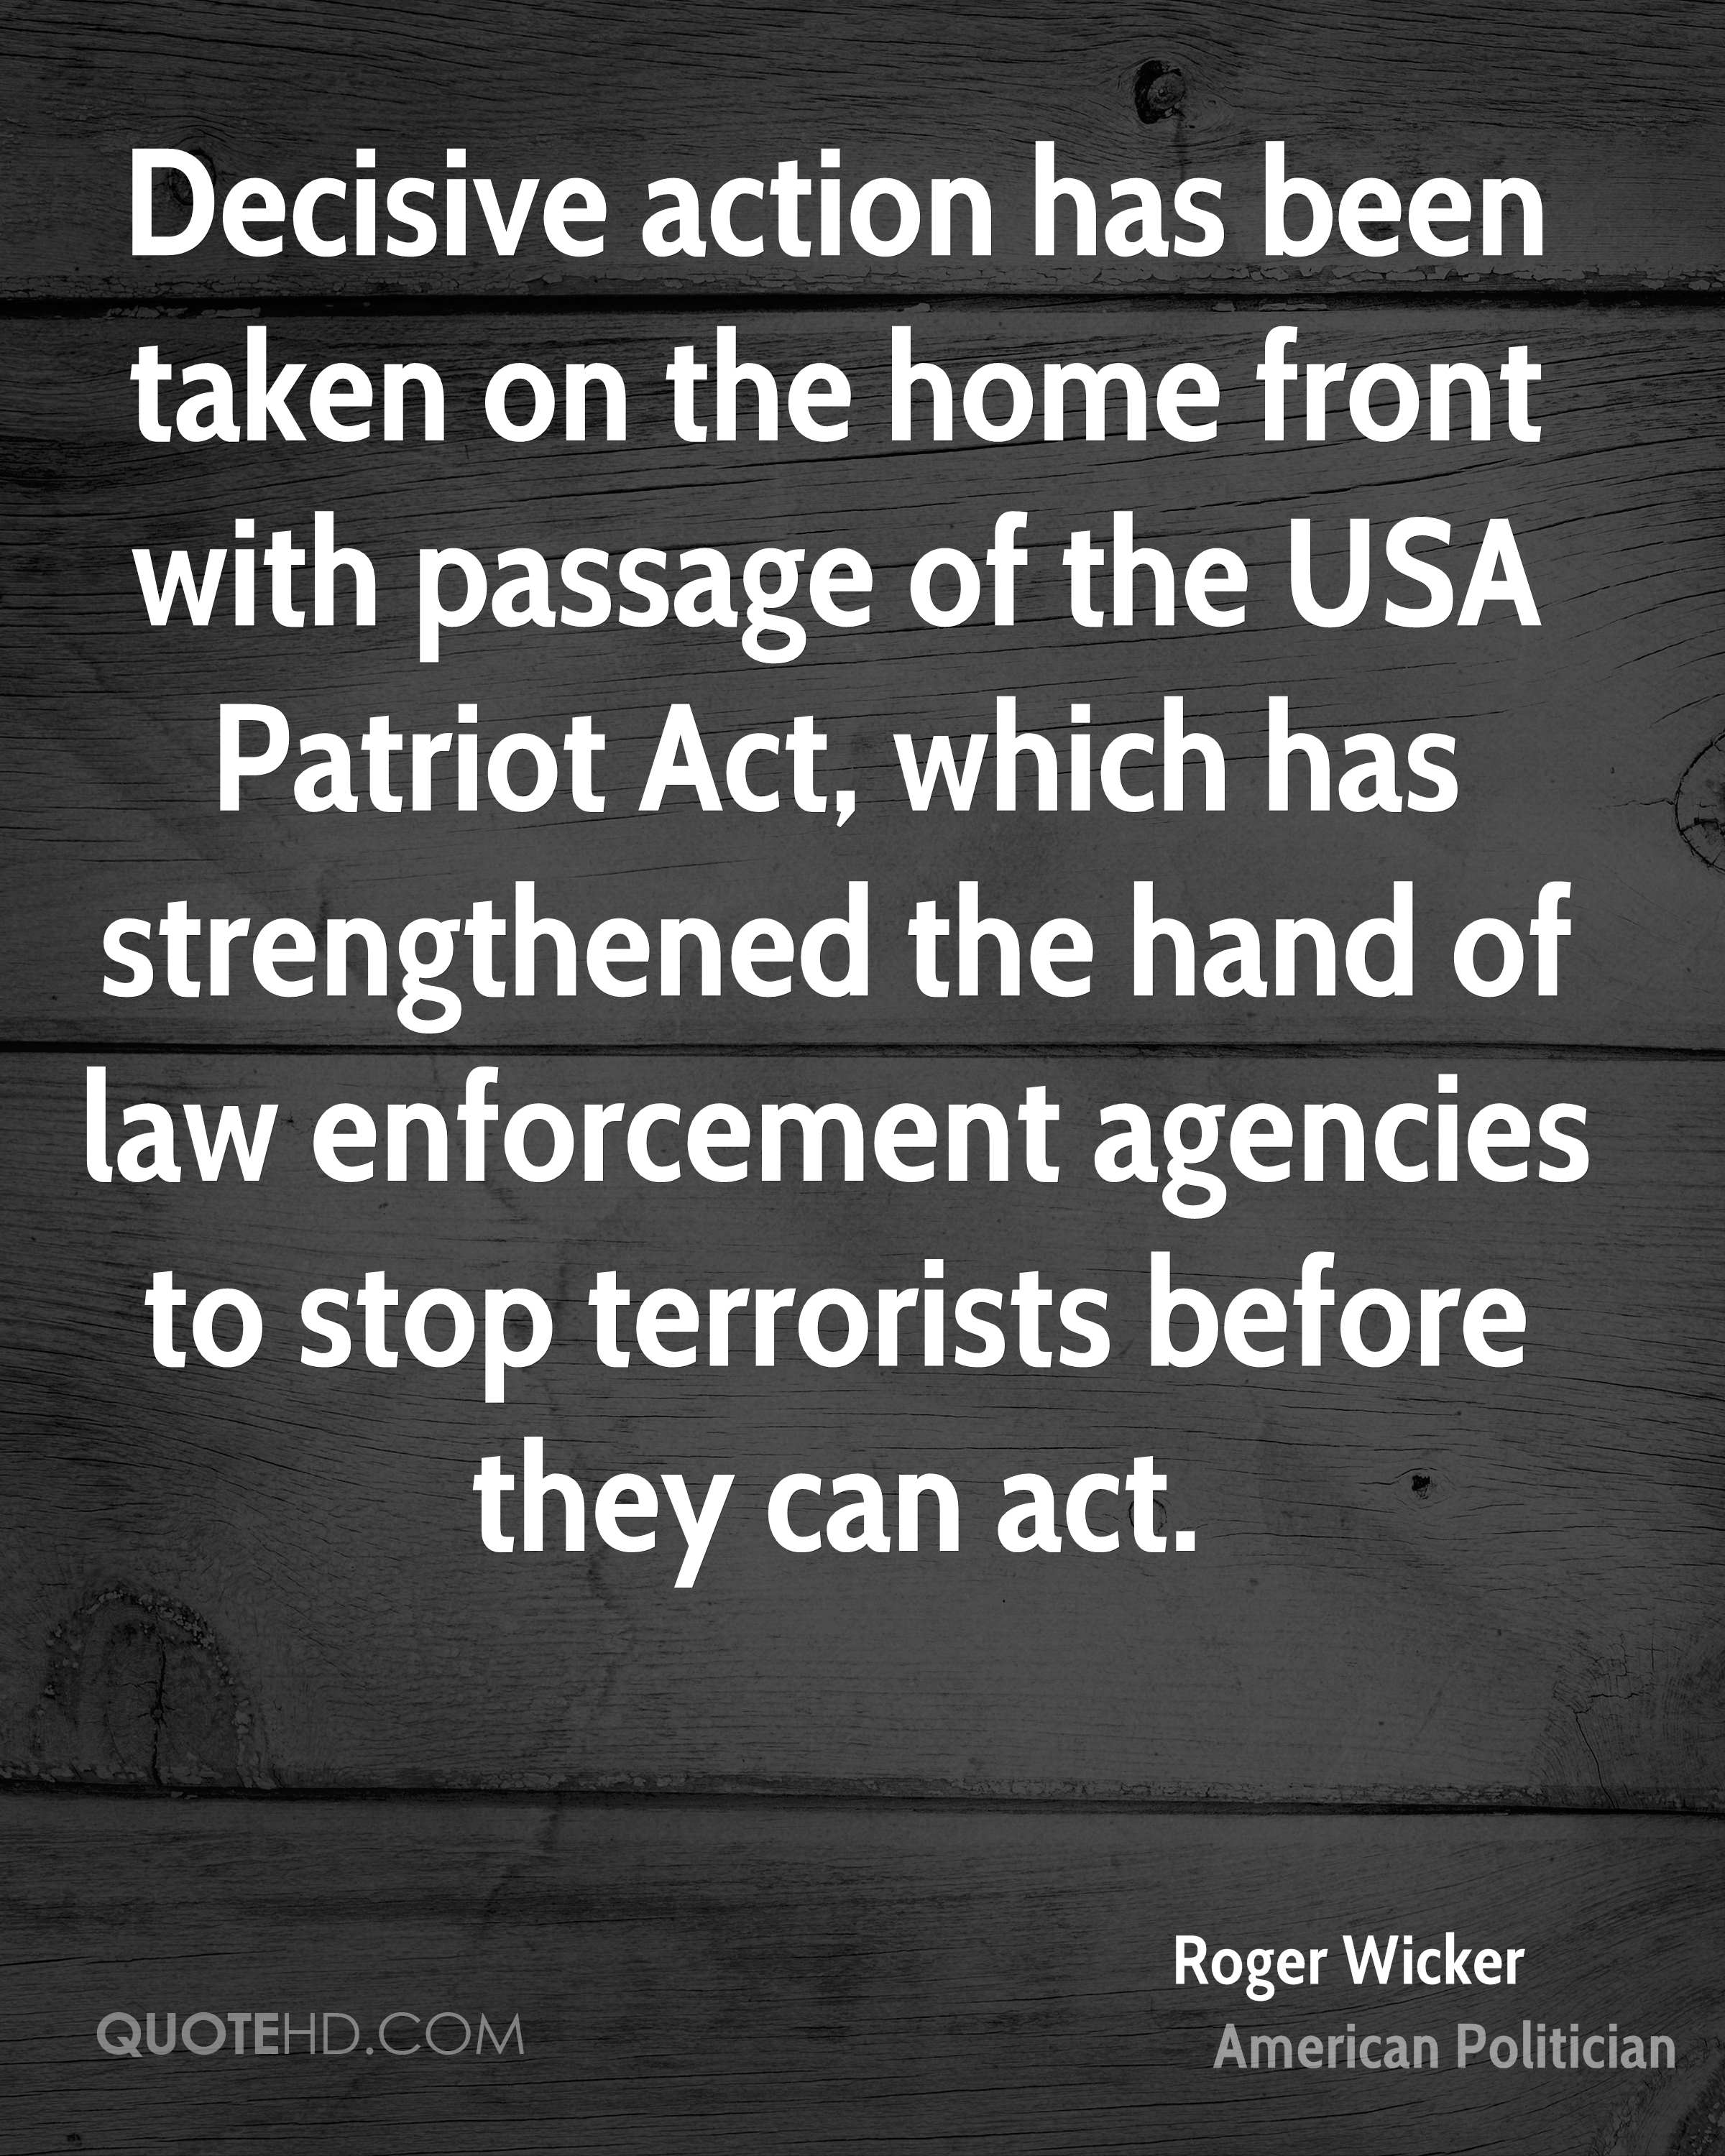 Decisive action has been taken on the home front with passage of the USA Patriot Act, which has strengthened the hand of law enforcement agencies to stop terrorists before they can act.